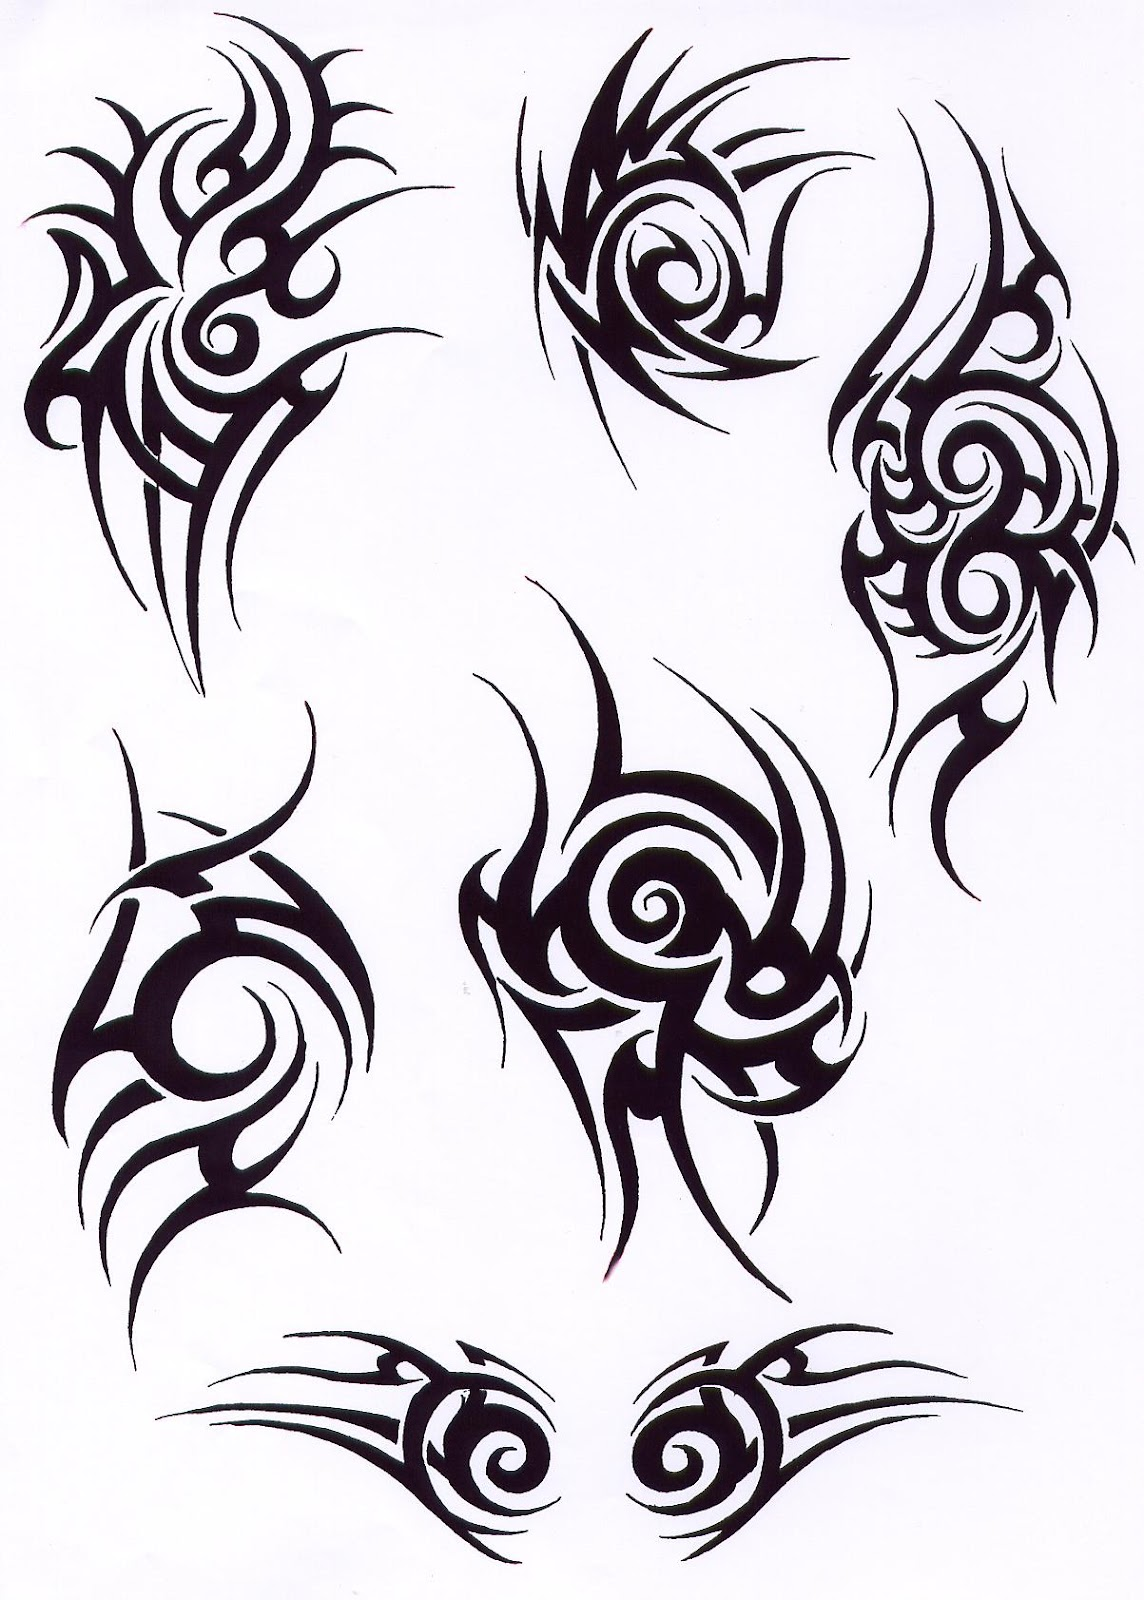 Think, Tribal tattoo designs consider